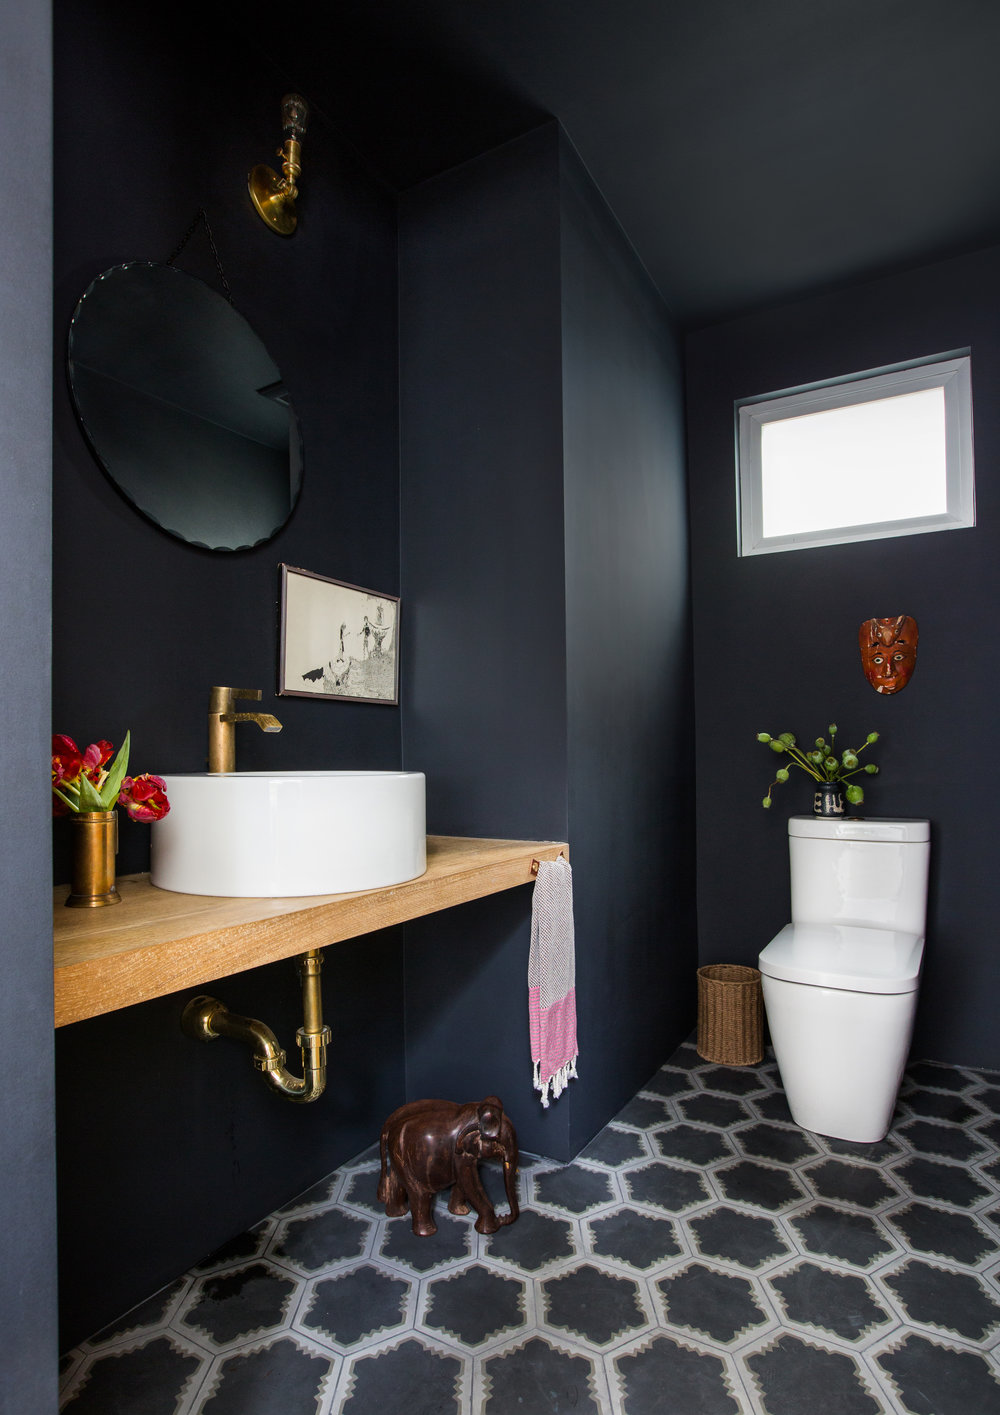 Gorgeous Black and White Bathrooms - Inspiration - Dering Hall - Black and white is probably the ultimate color combination for creating a classic look. Find inspiration in these 40 black and white bathrooms for your next flooring, wall treatment, and cabinetry projects.